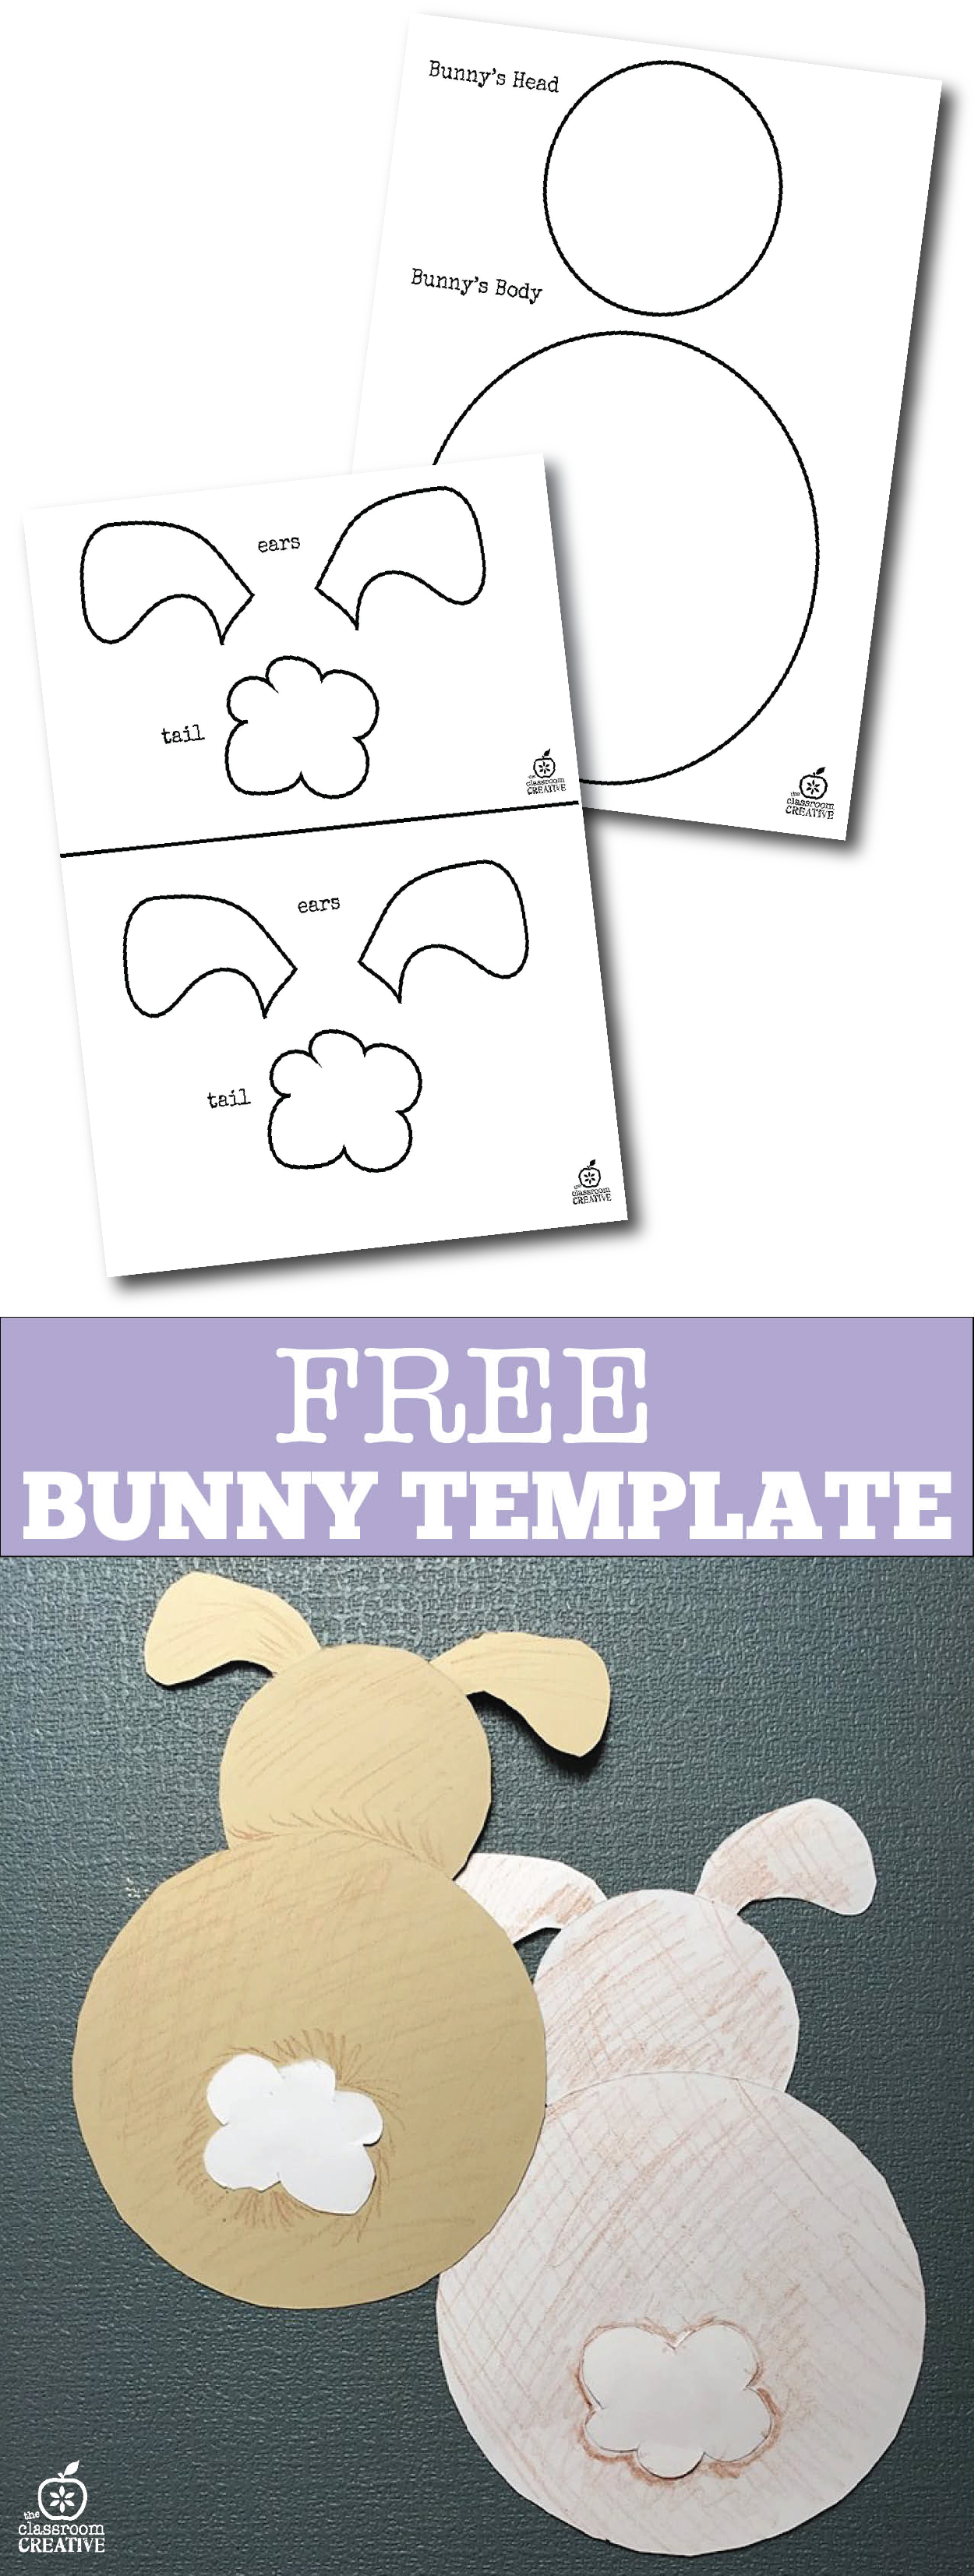 free bunny template rear view